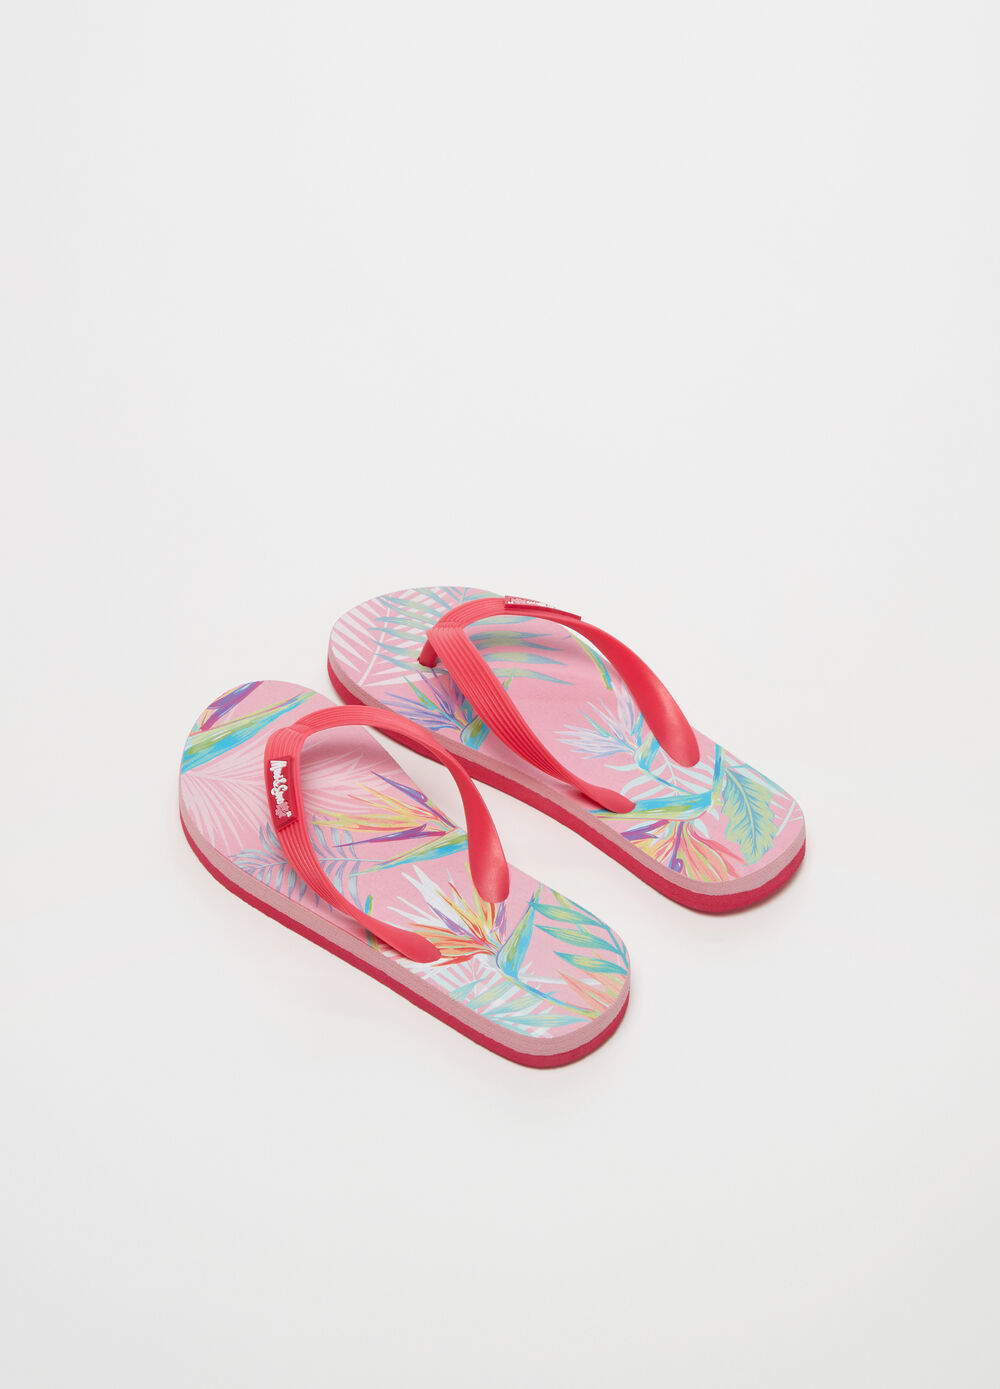 Hawaiian flip flops by Maui and Sons